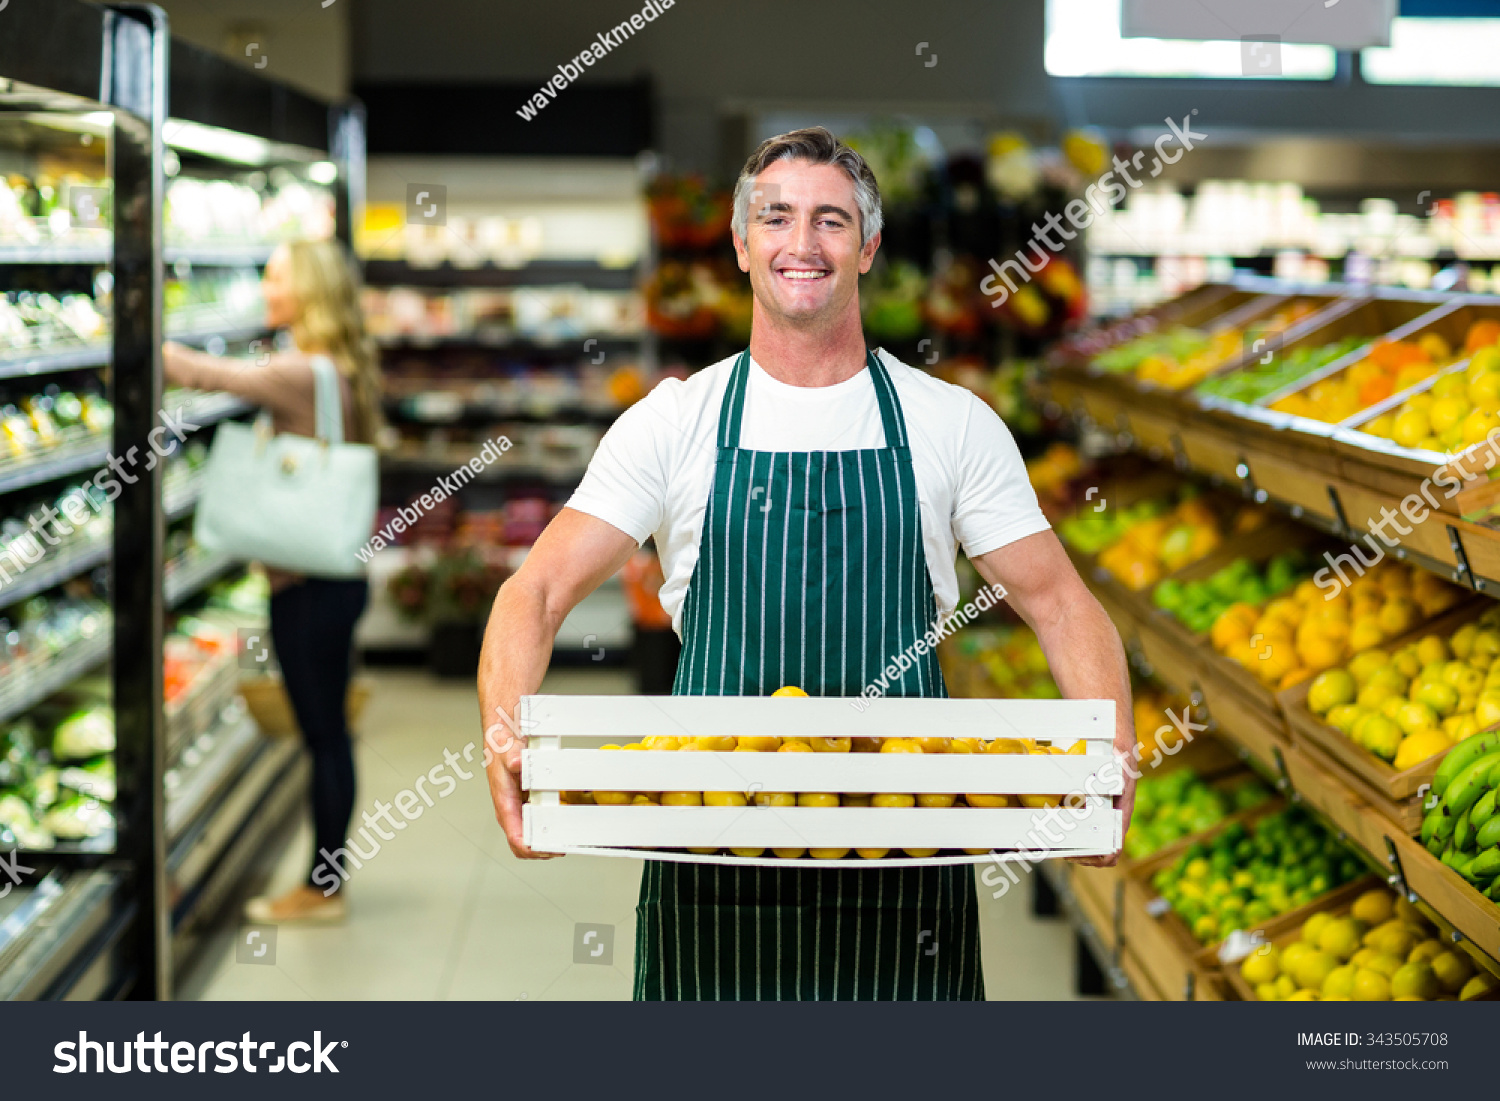 store staff stock photos images pictures shutterstock smiling worker carrying vegetables box in supermarket stock photo